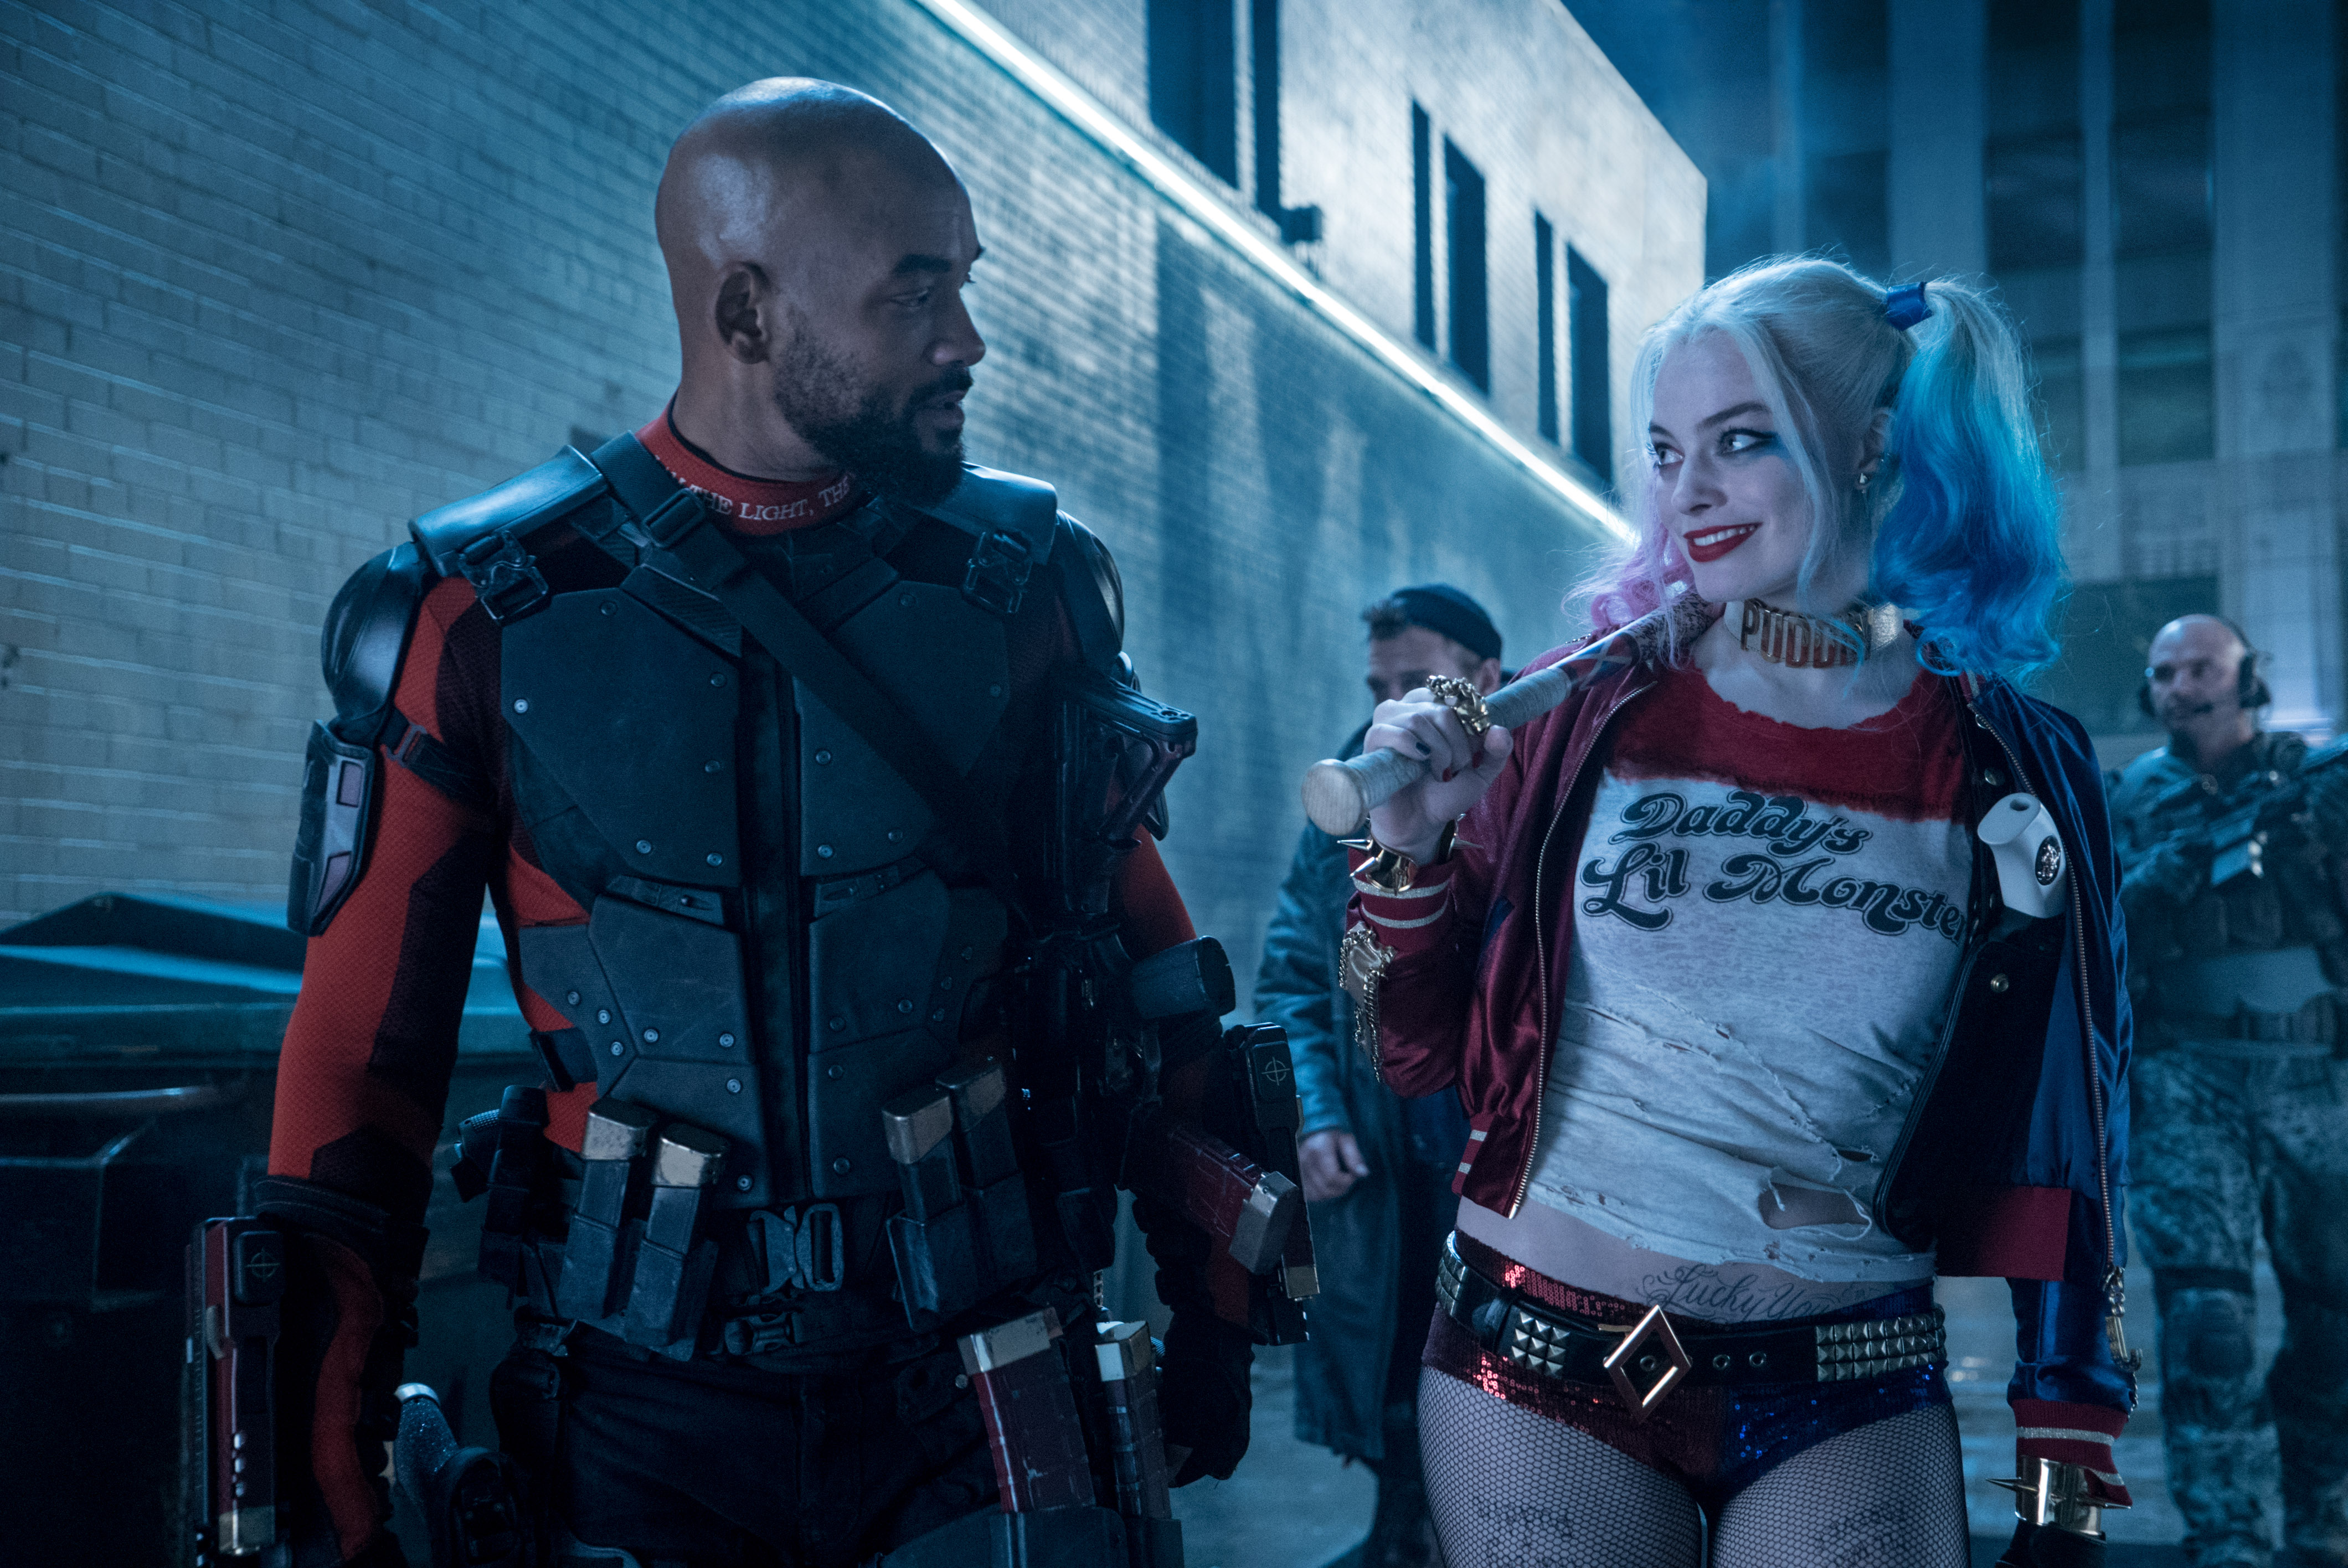 Five Reasons to See Suicide Squad Despite Negative Reviews